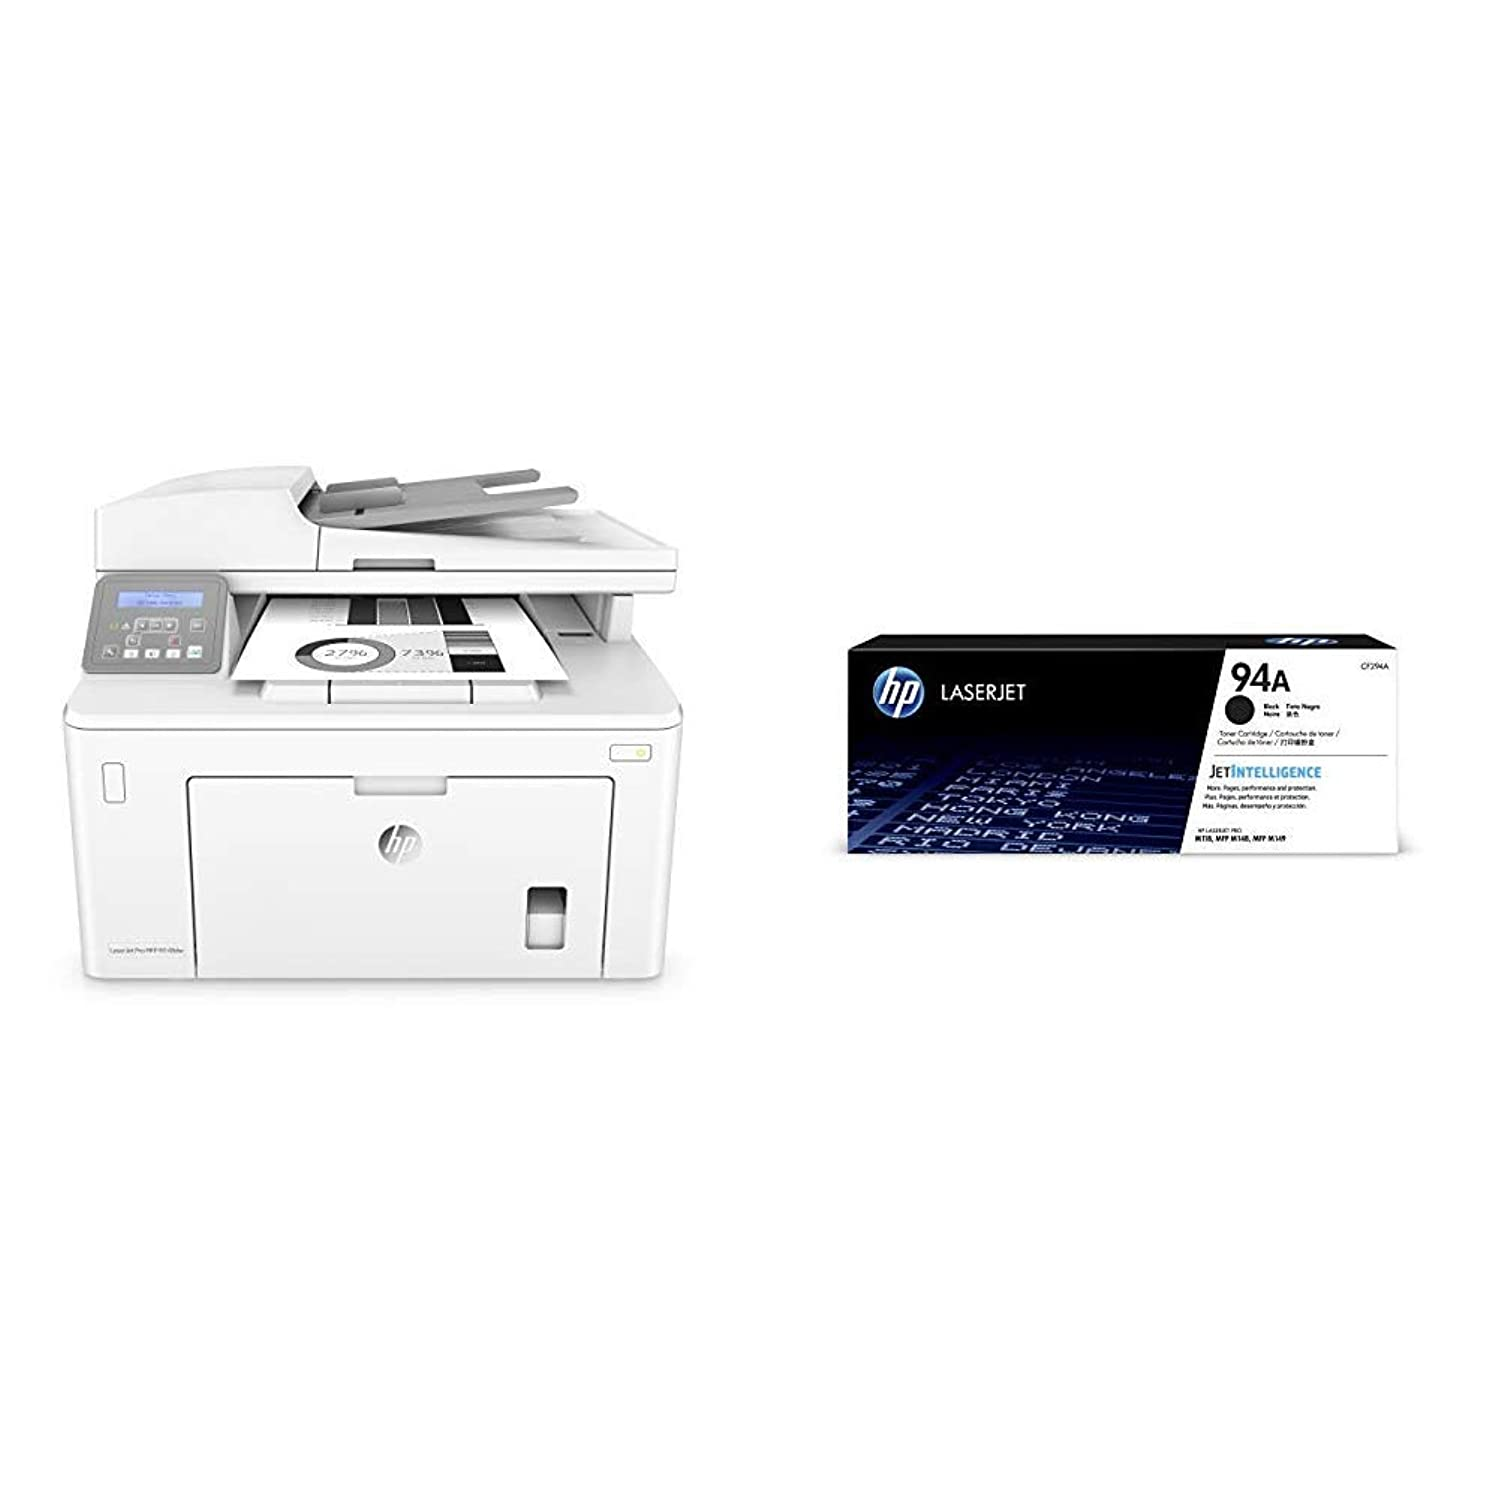 HP Laserjet Pro M148dw All-in-One Wireless Monochrome Laser Printer with Auto Two-sided Printing, Mobile Printing & Built-in Ethernet (4PA41A) with Standard Toner Bundle